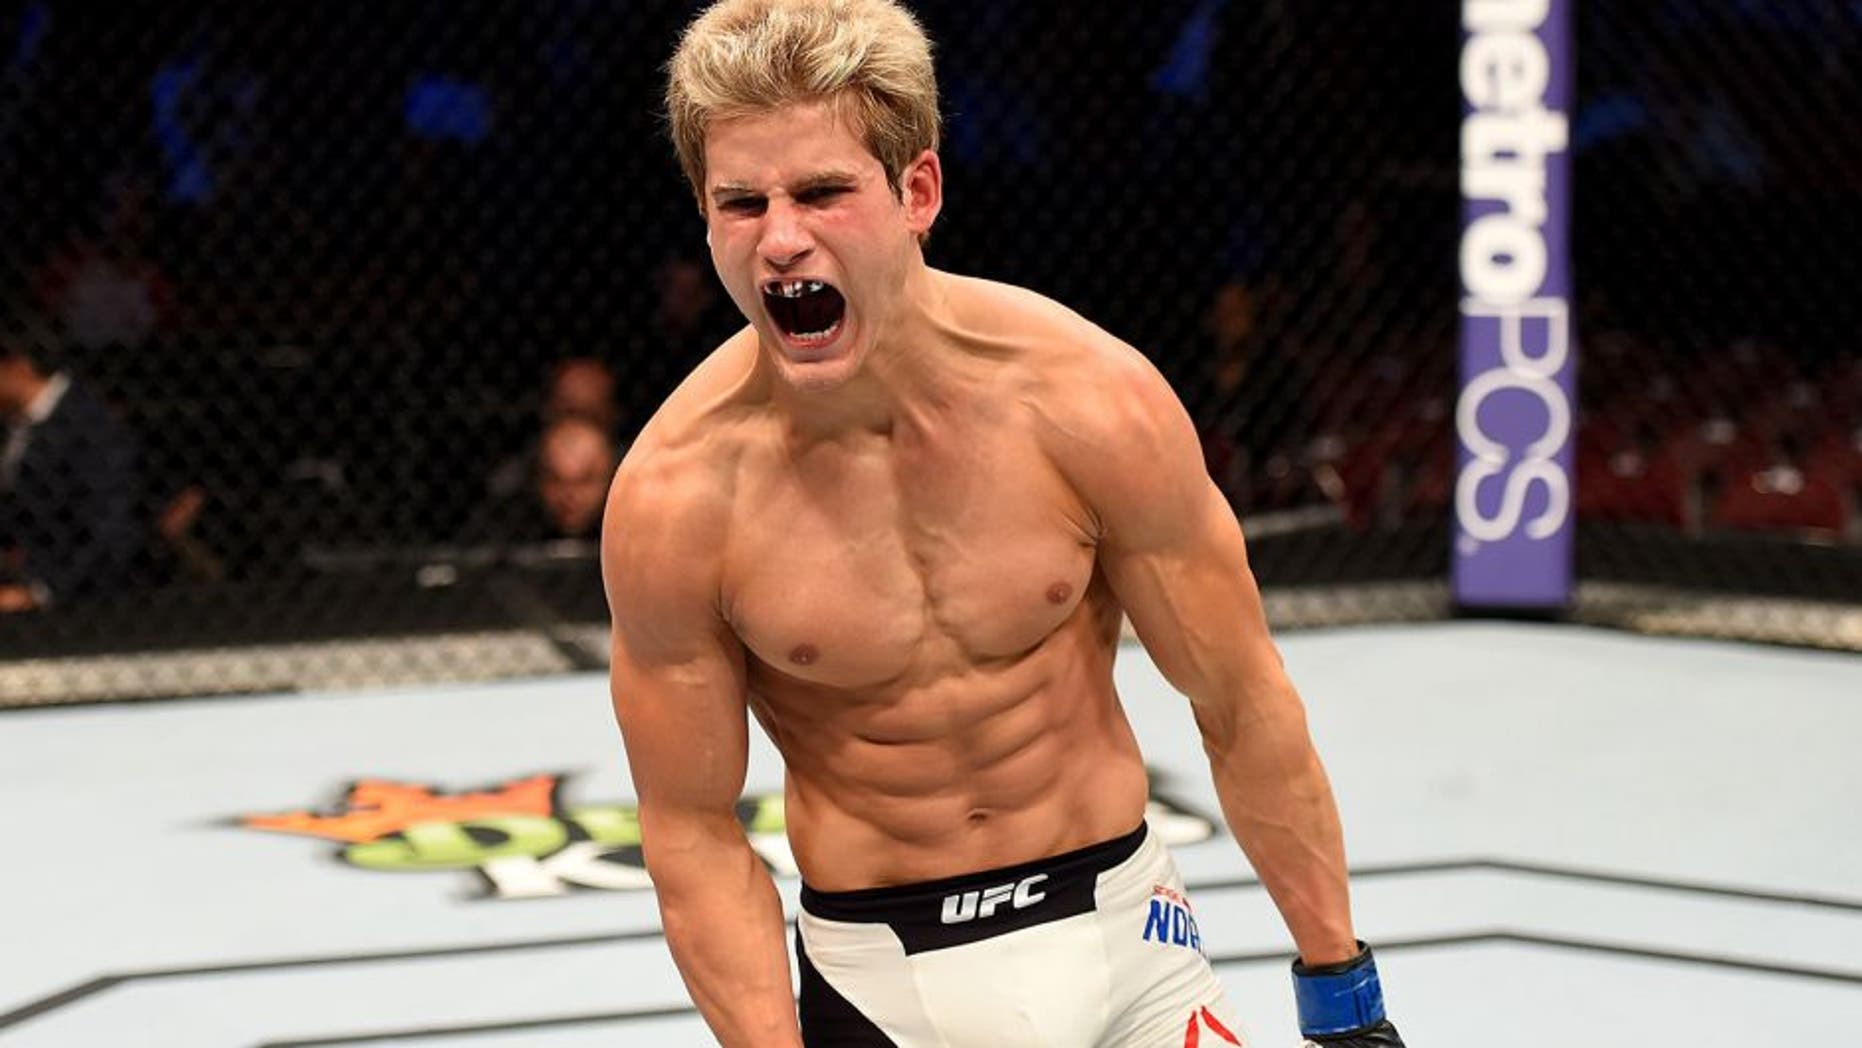 HOUSTON, TX - OCTOBER 03: Sage Northcutt celebrates his victory over Francisco Trevino in their lightweight bout during the UFC 192 event at the Toyota Center on October 3, 2015 in Houston, Texas. (Photo by Josh Hedges/Zuffa LLC/Zuffa LLC via Getty Images)